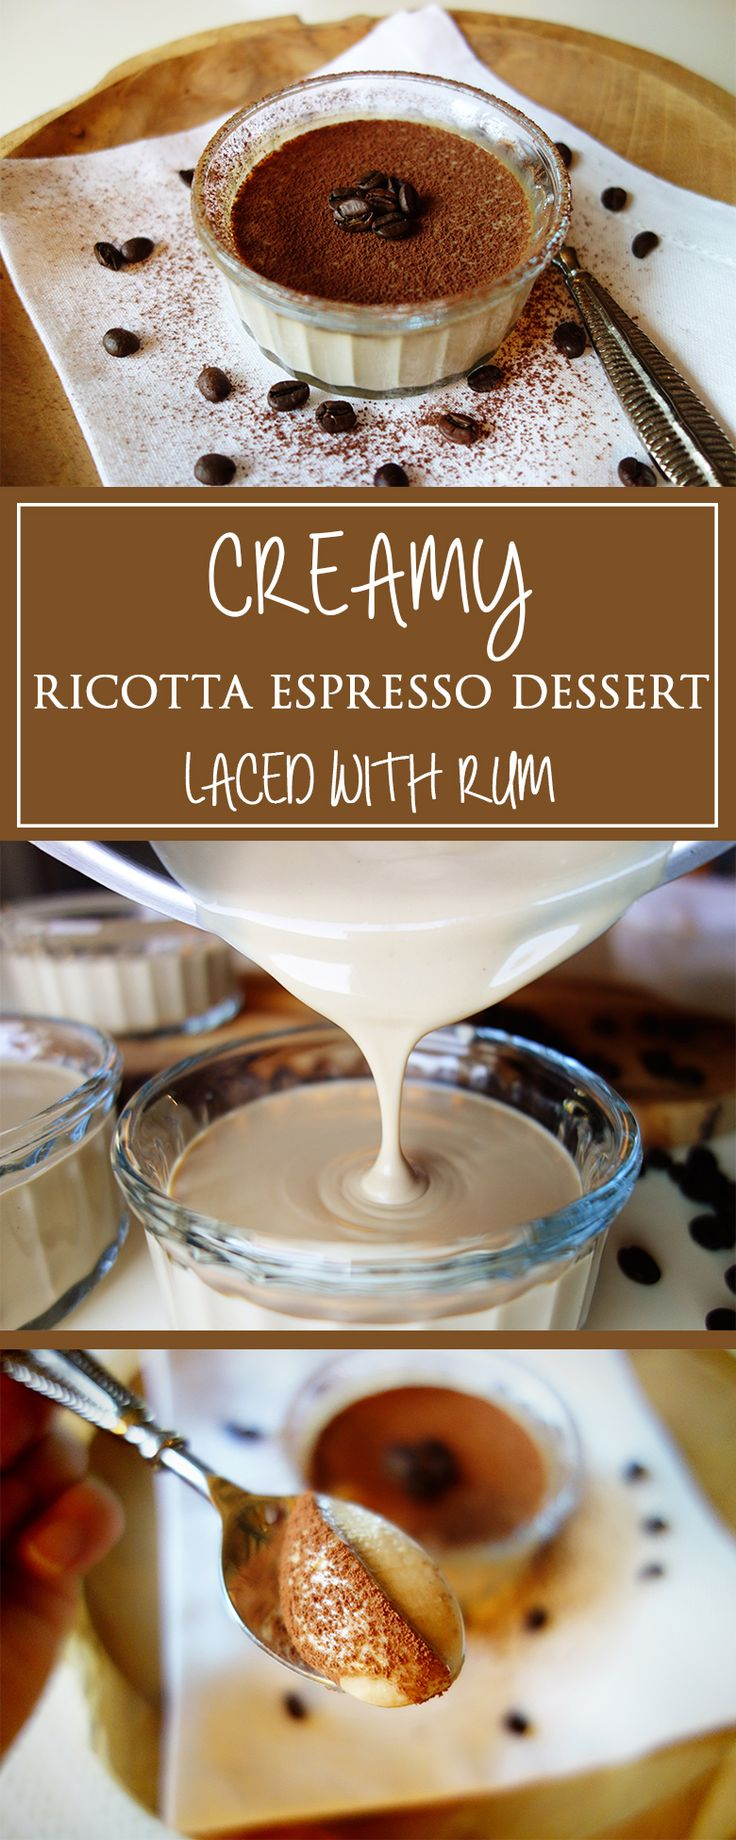 Creamy Ricotta Espresso Dessert laced with Rum - probably the most simple…